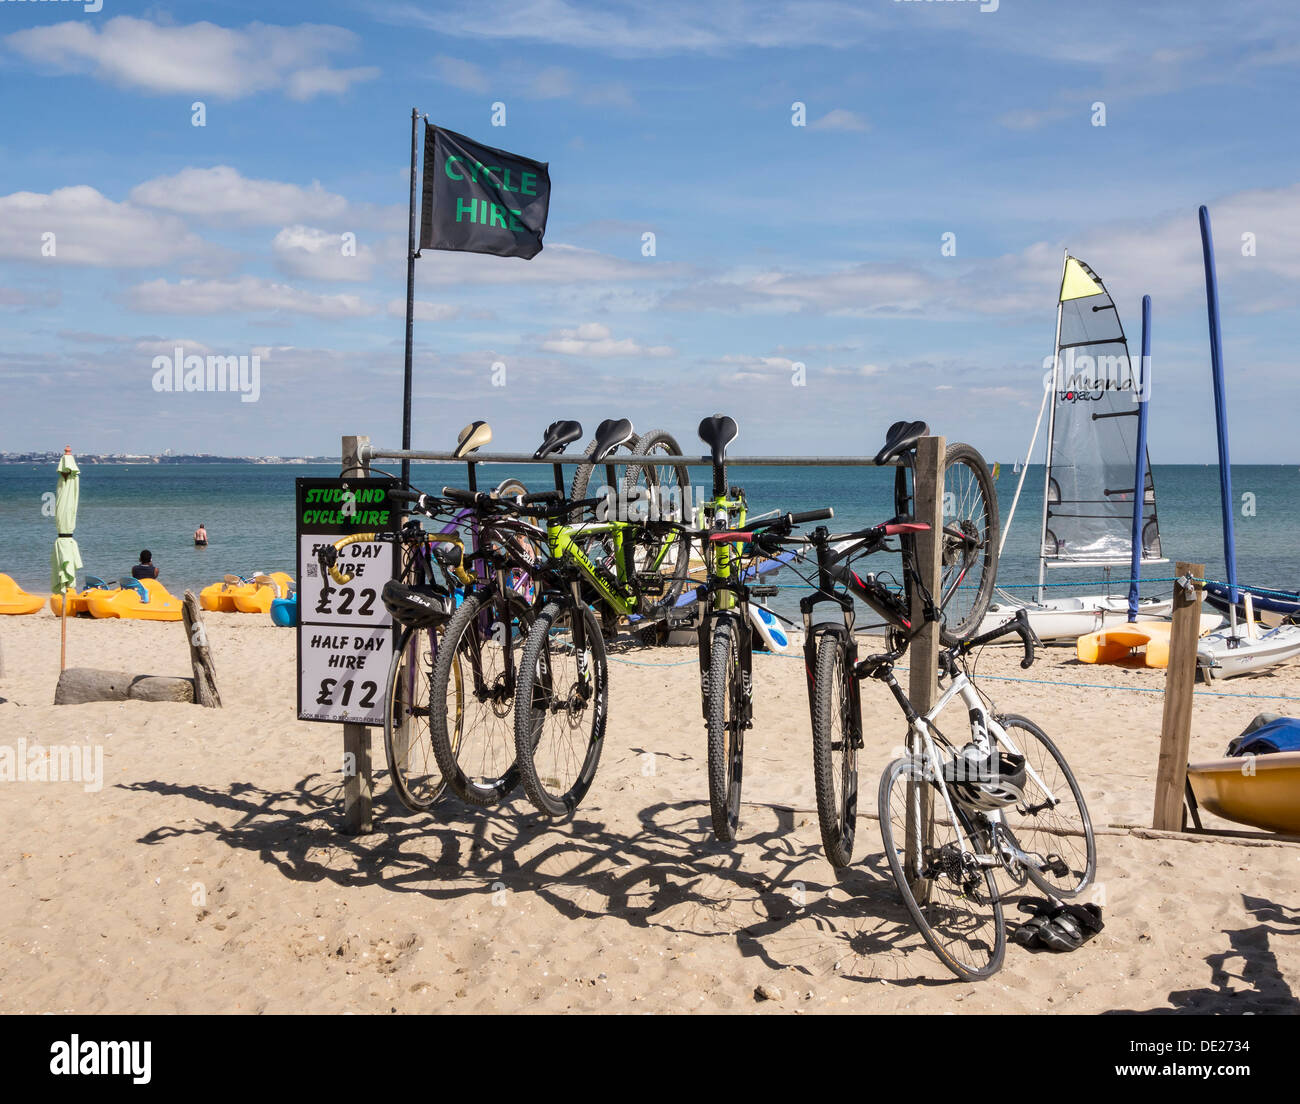 Studland Beach, Bikes for hire in a rack, Isle of Purbeck, Dorset, England, UK. - Stock Image